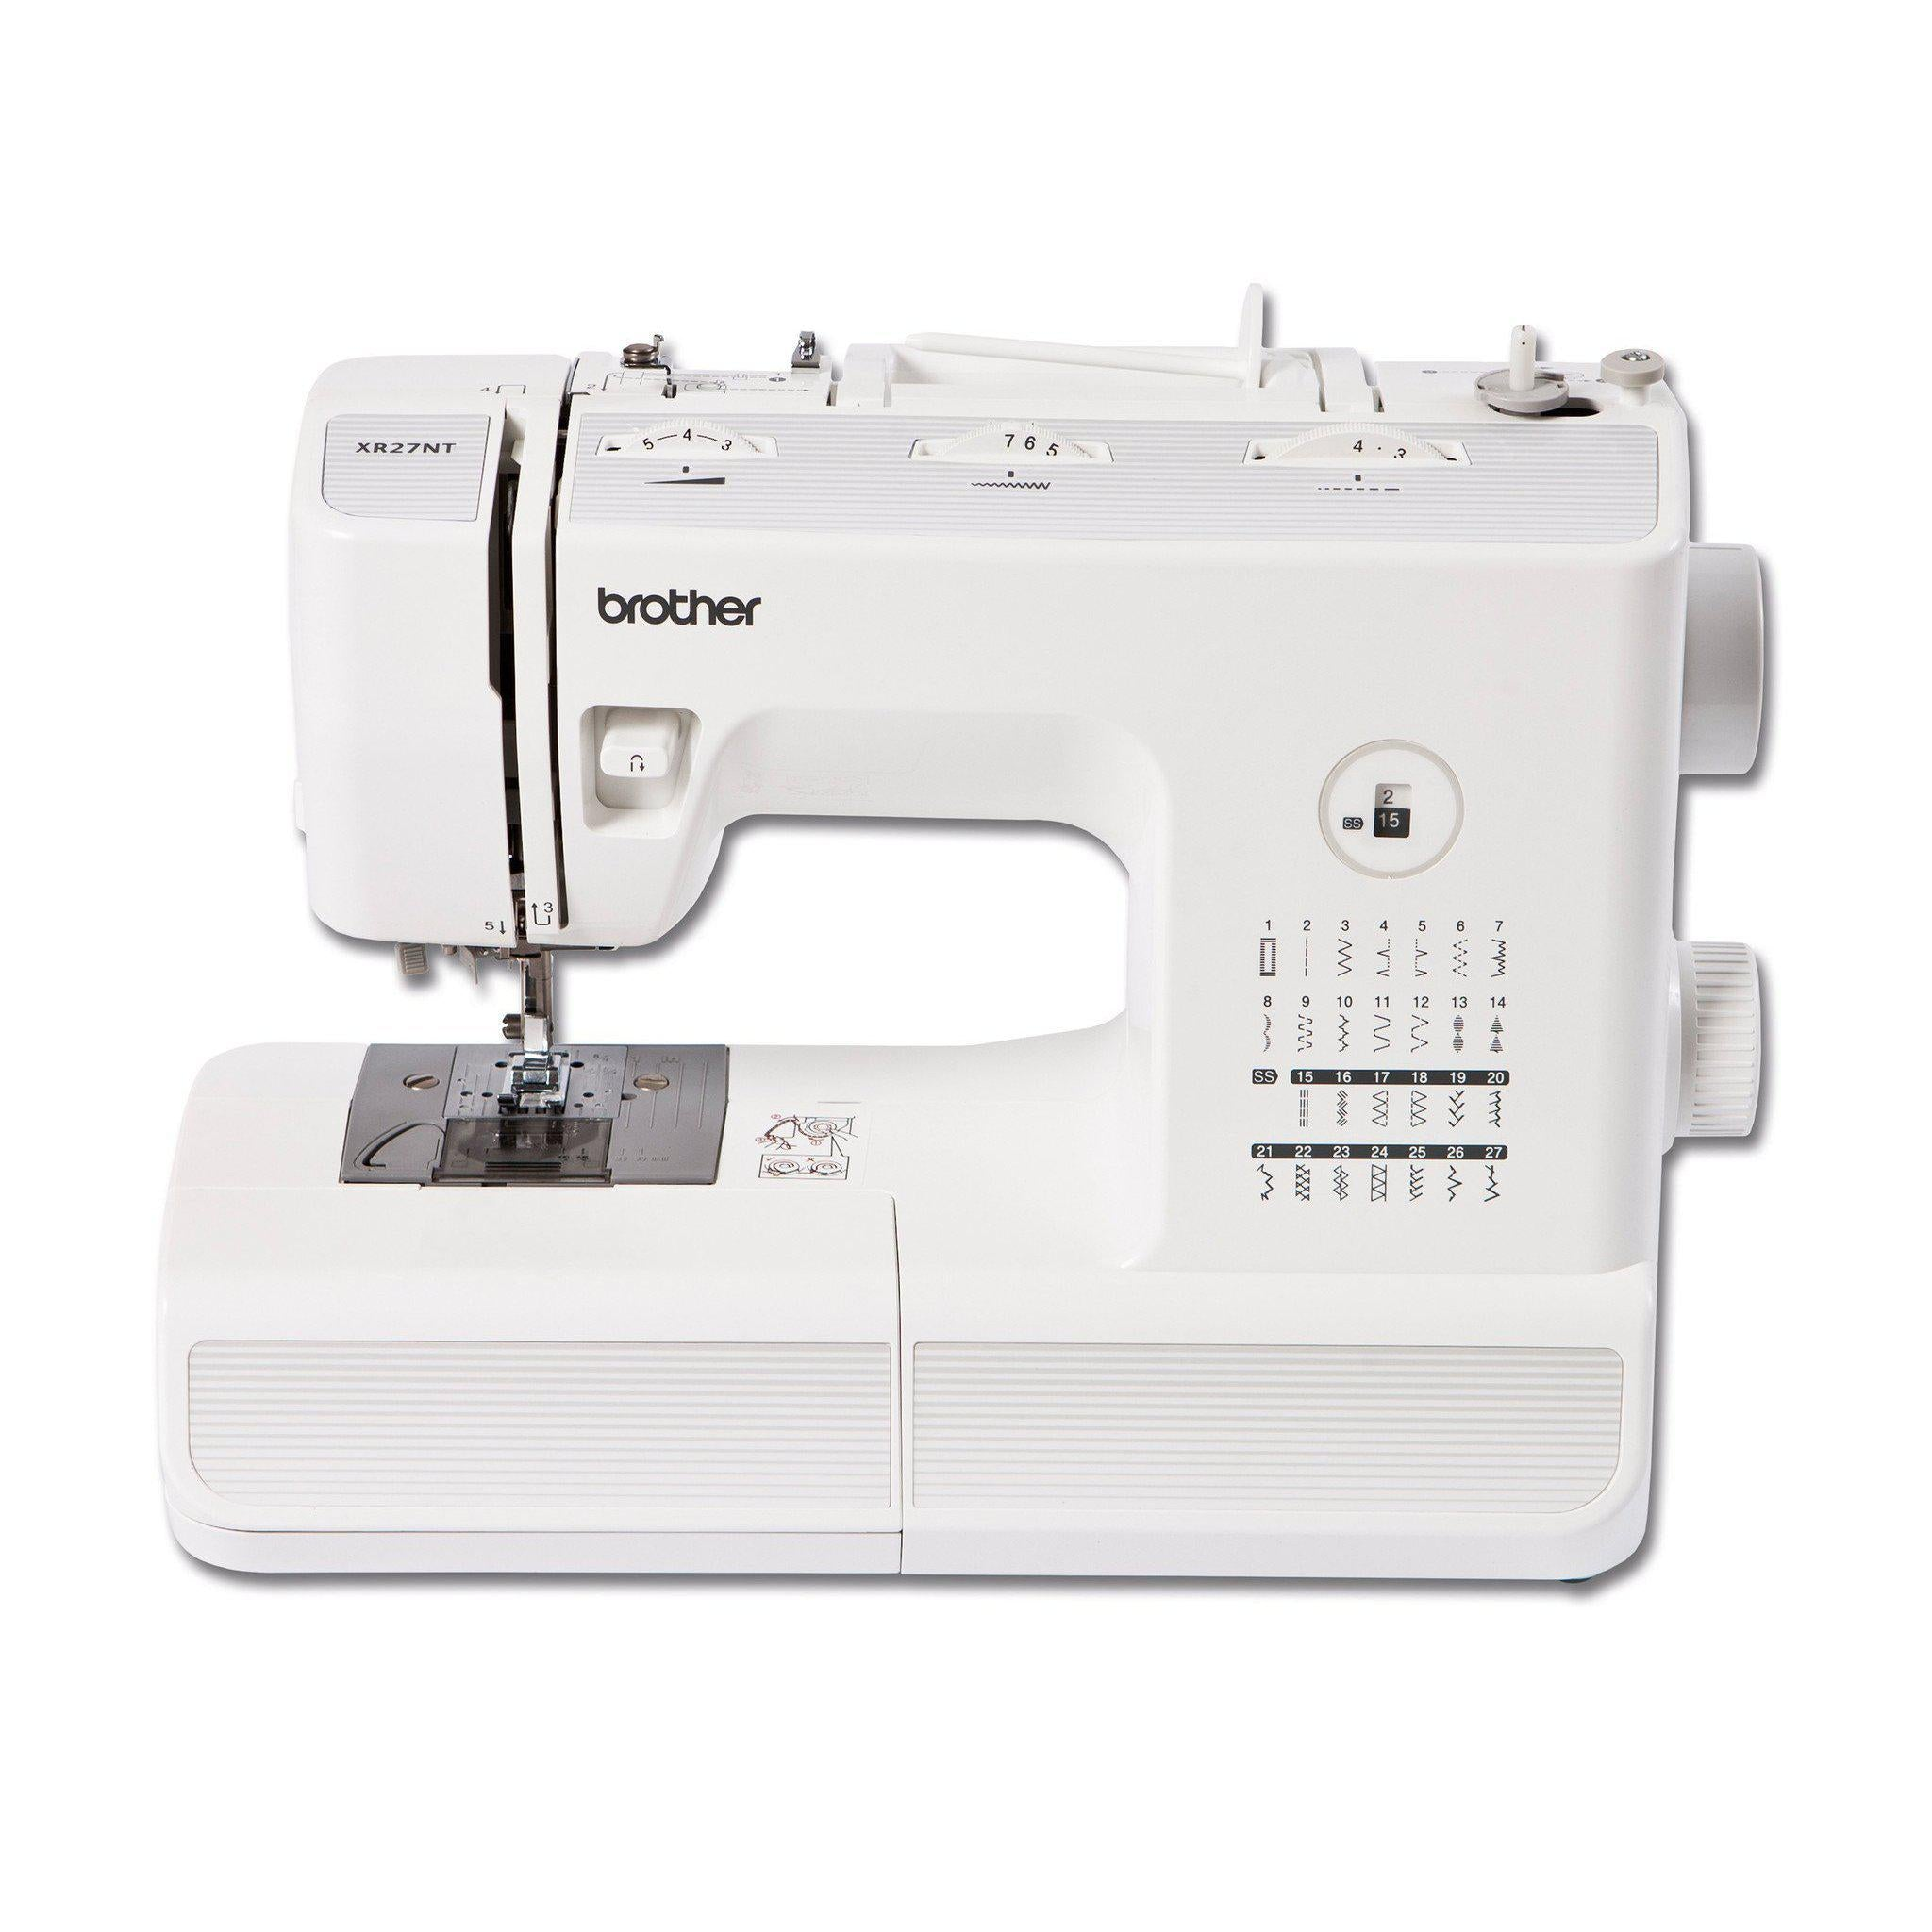 Brother XR27NT Sewing Machine Brother Sewing Machines - Fabric Mouse